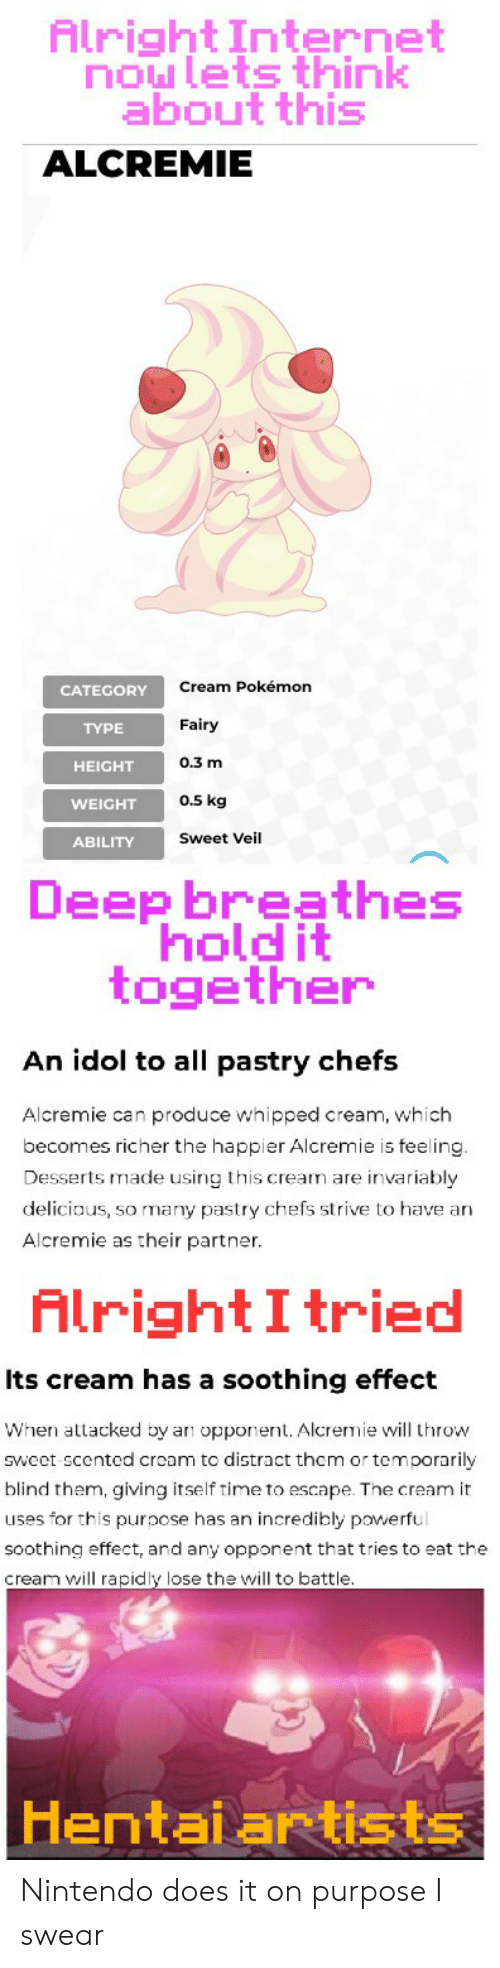 Hentai, Internet, and Nintendo: Alright Internet  now lets think  about this  ALCREMIE  Cream Pokémon  CATEGORY  Fairy  ΤΥΡΕ  0.3 m  HEIGHT  0.5 kg  WEIGHT  Sweet Veil  ABILITY  Deep breathes  hold it  together  An idol to all pastry chefs  Alcremie can produce whipped cream, which  becomes richer the happier Alcremie is feeling.  Desserts made using this cream are invariably  deliciaus, so many pastry chefs strive to have an  Alcremie as their partner  AlrightI tried  Its cream has a soothing effect  When attacked by a opponent. Alcremie will throw  sweet scented cream to distract them or temporarily  blind them, giving itself time to escape. The cream it  uses for this purpose has an incredibly powerful  soothing effect, and any opponent that tries to eat the  cream will rapidly lose the will to battle.  Hentai artists Nintendo does it on purpose I swear